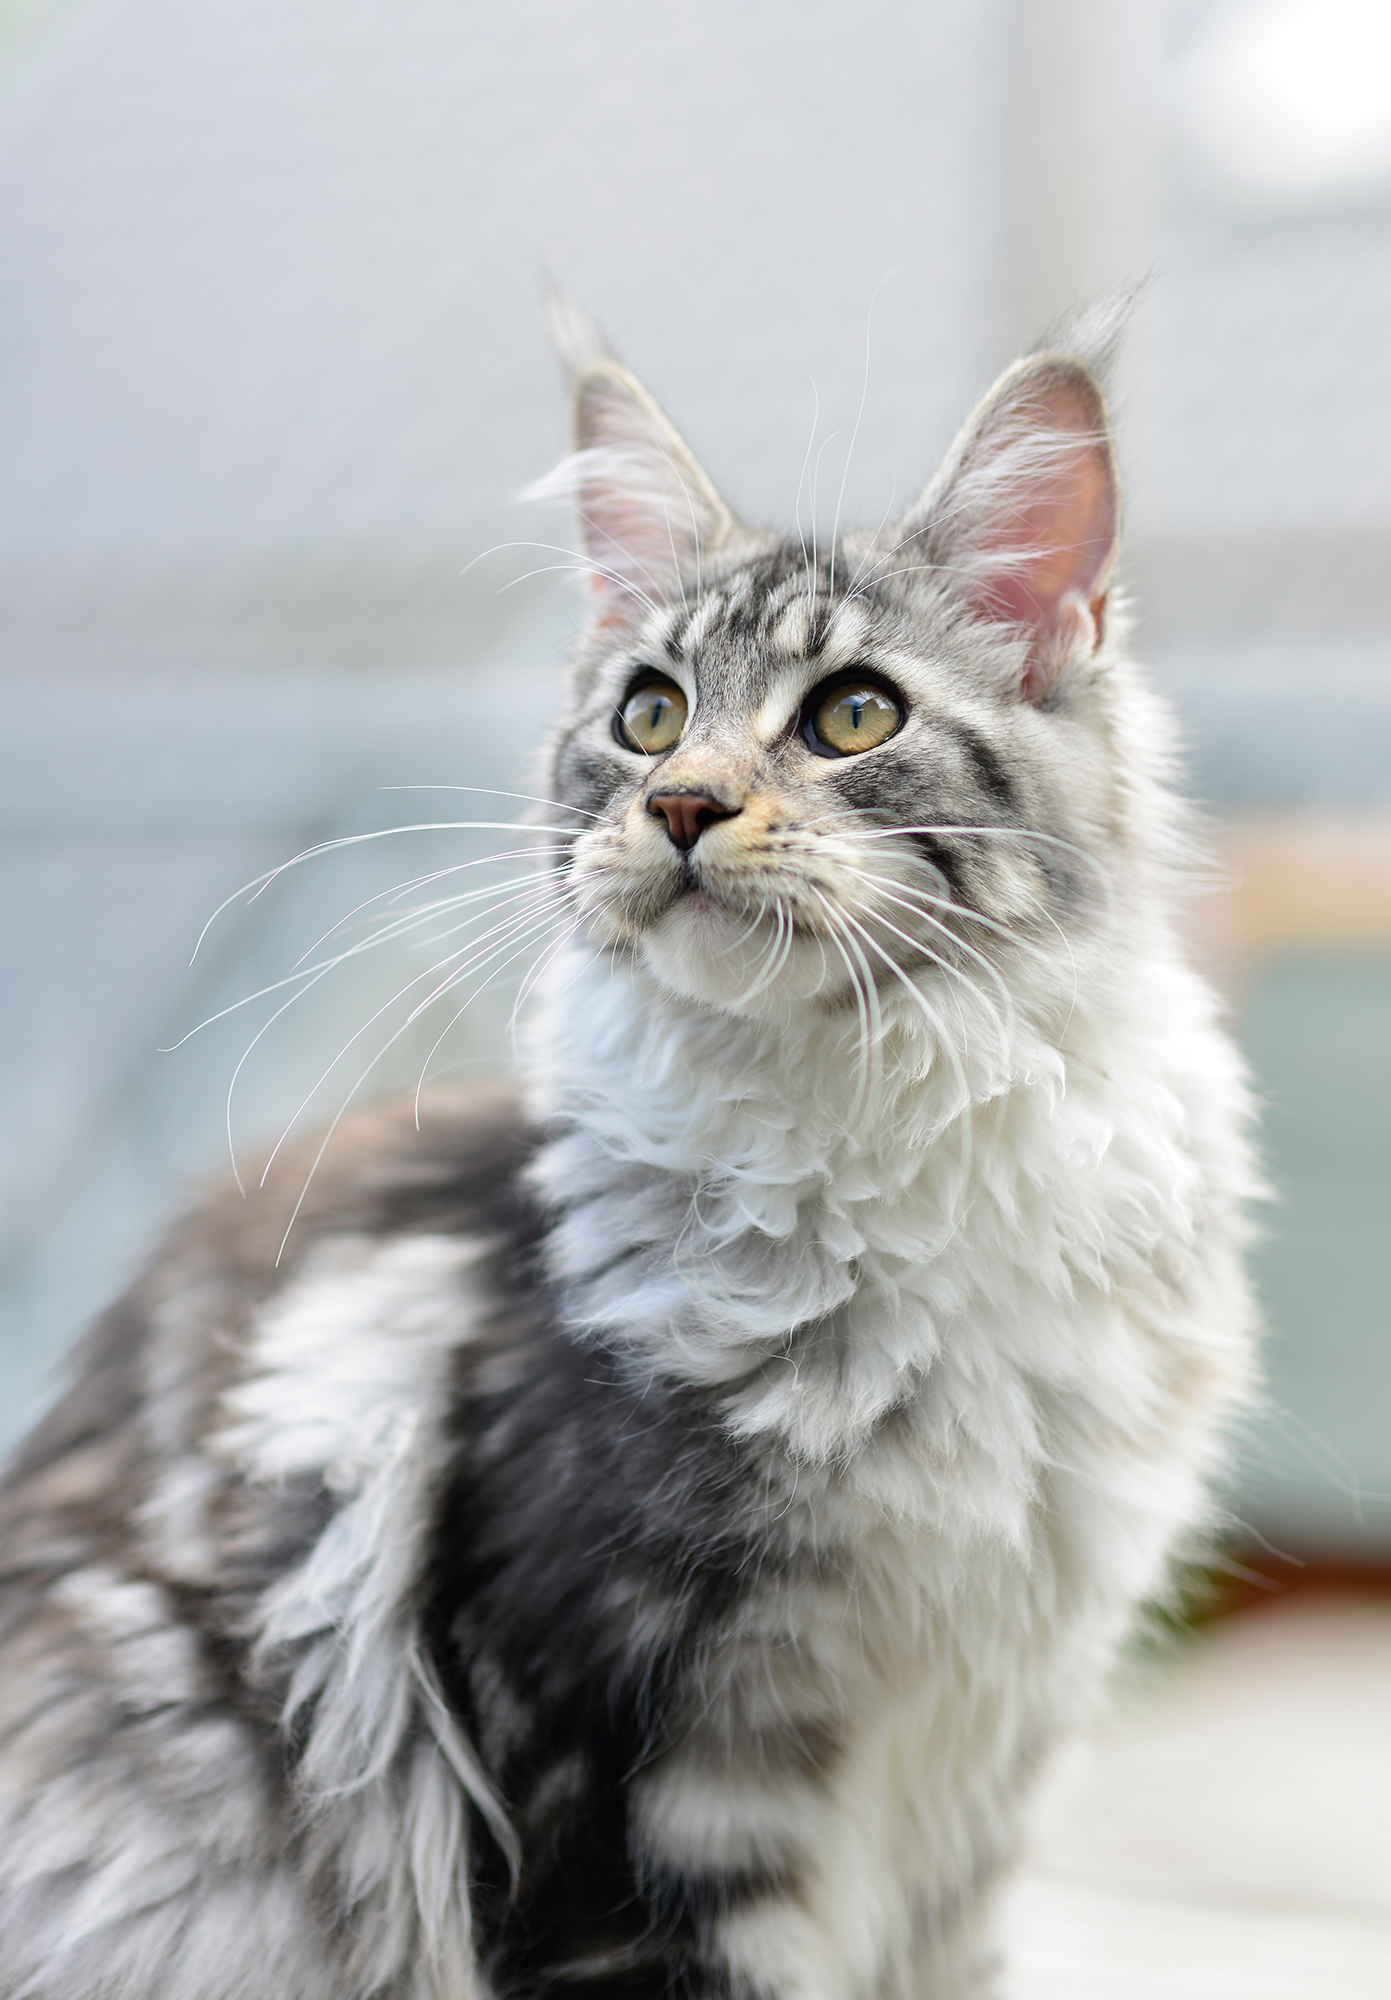 Maine Coon Cat Sitting on a Carpet